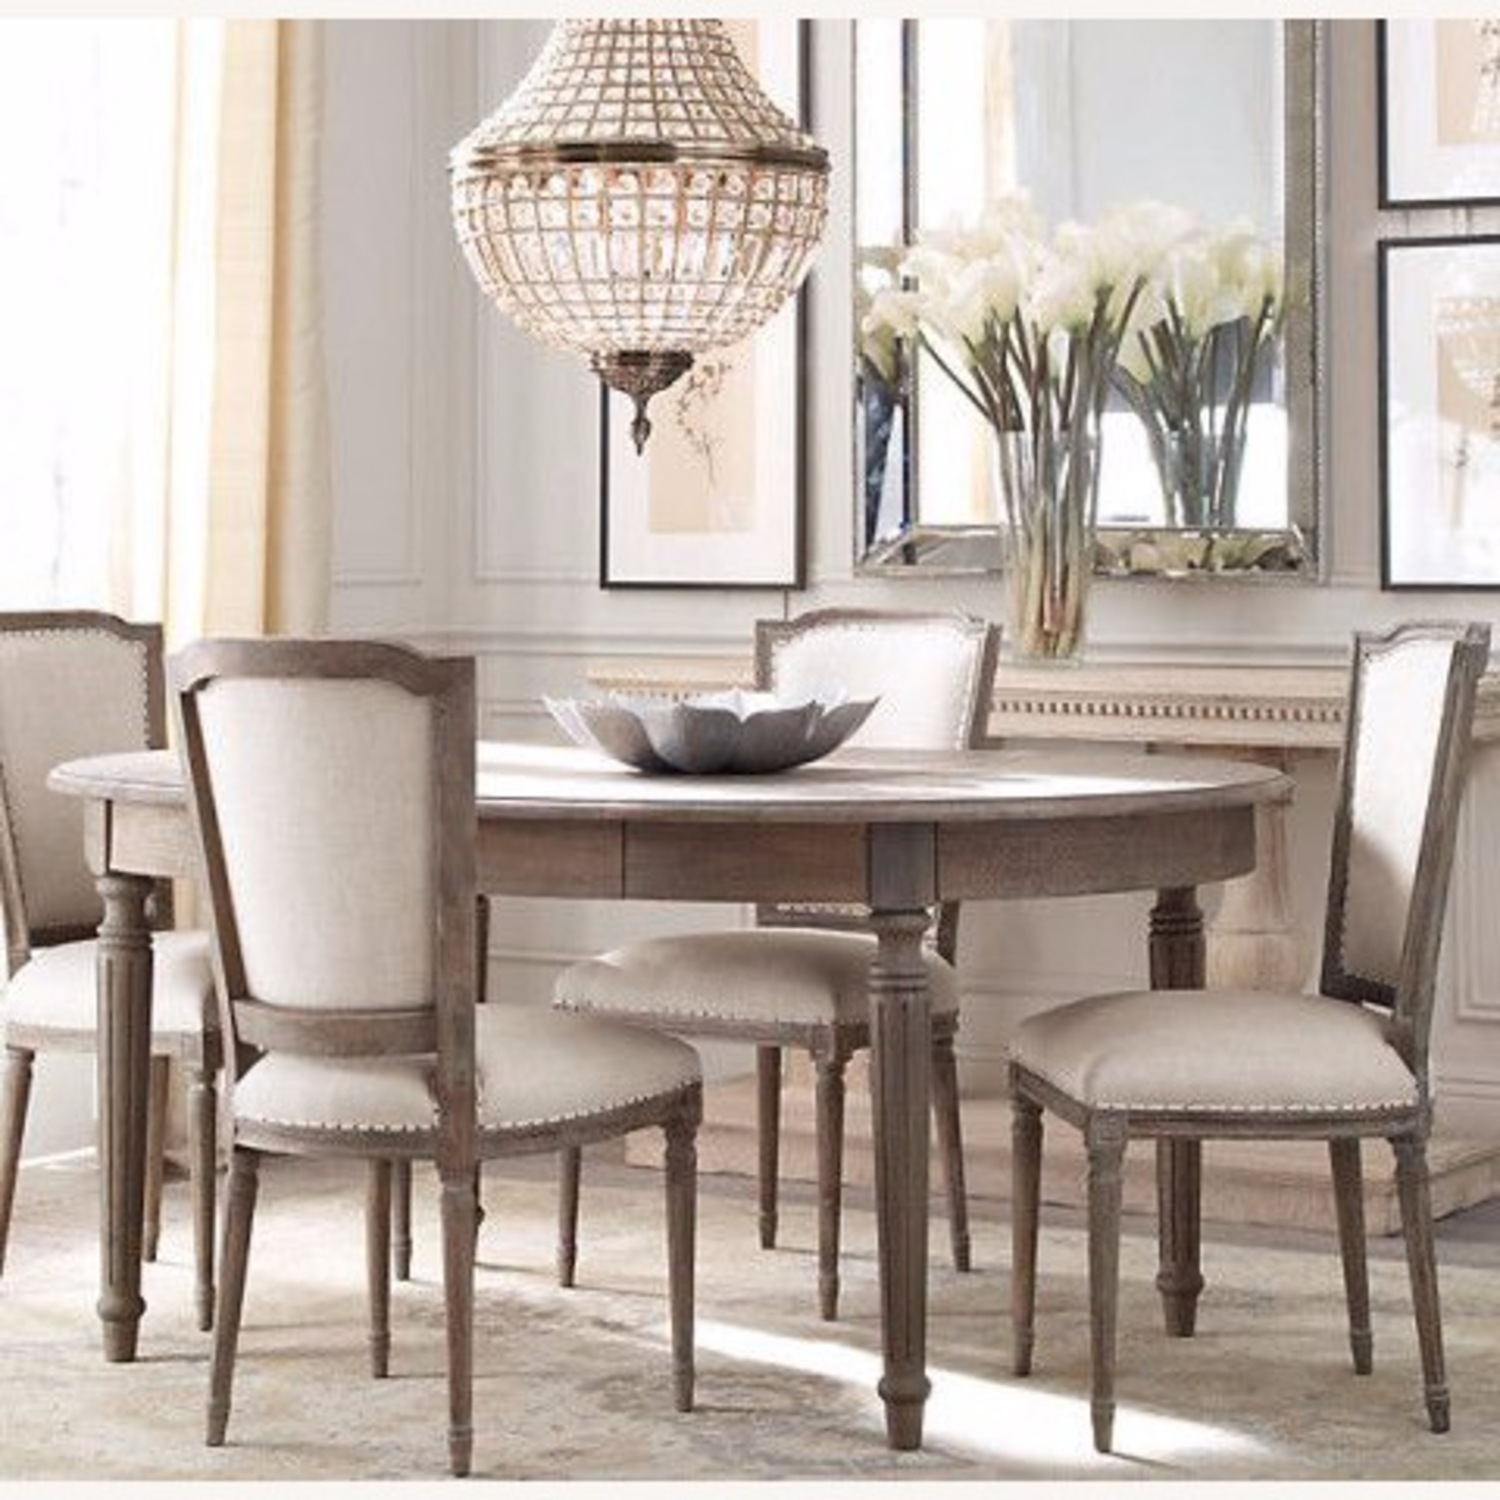 Round dining table set Large Round Dining Table Set With Leaf Foter Round Dining Table Set With Leaf Ideas On Foter